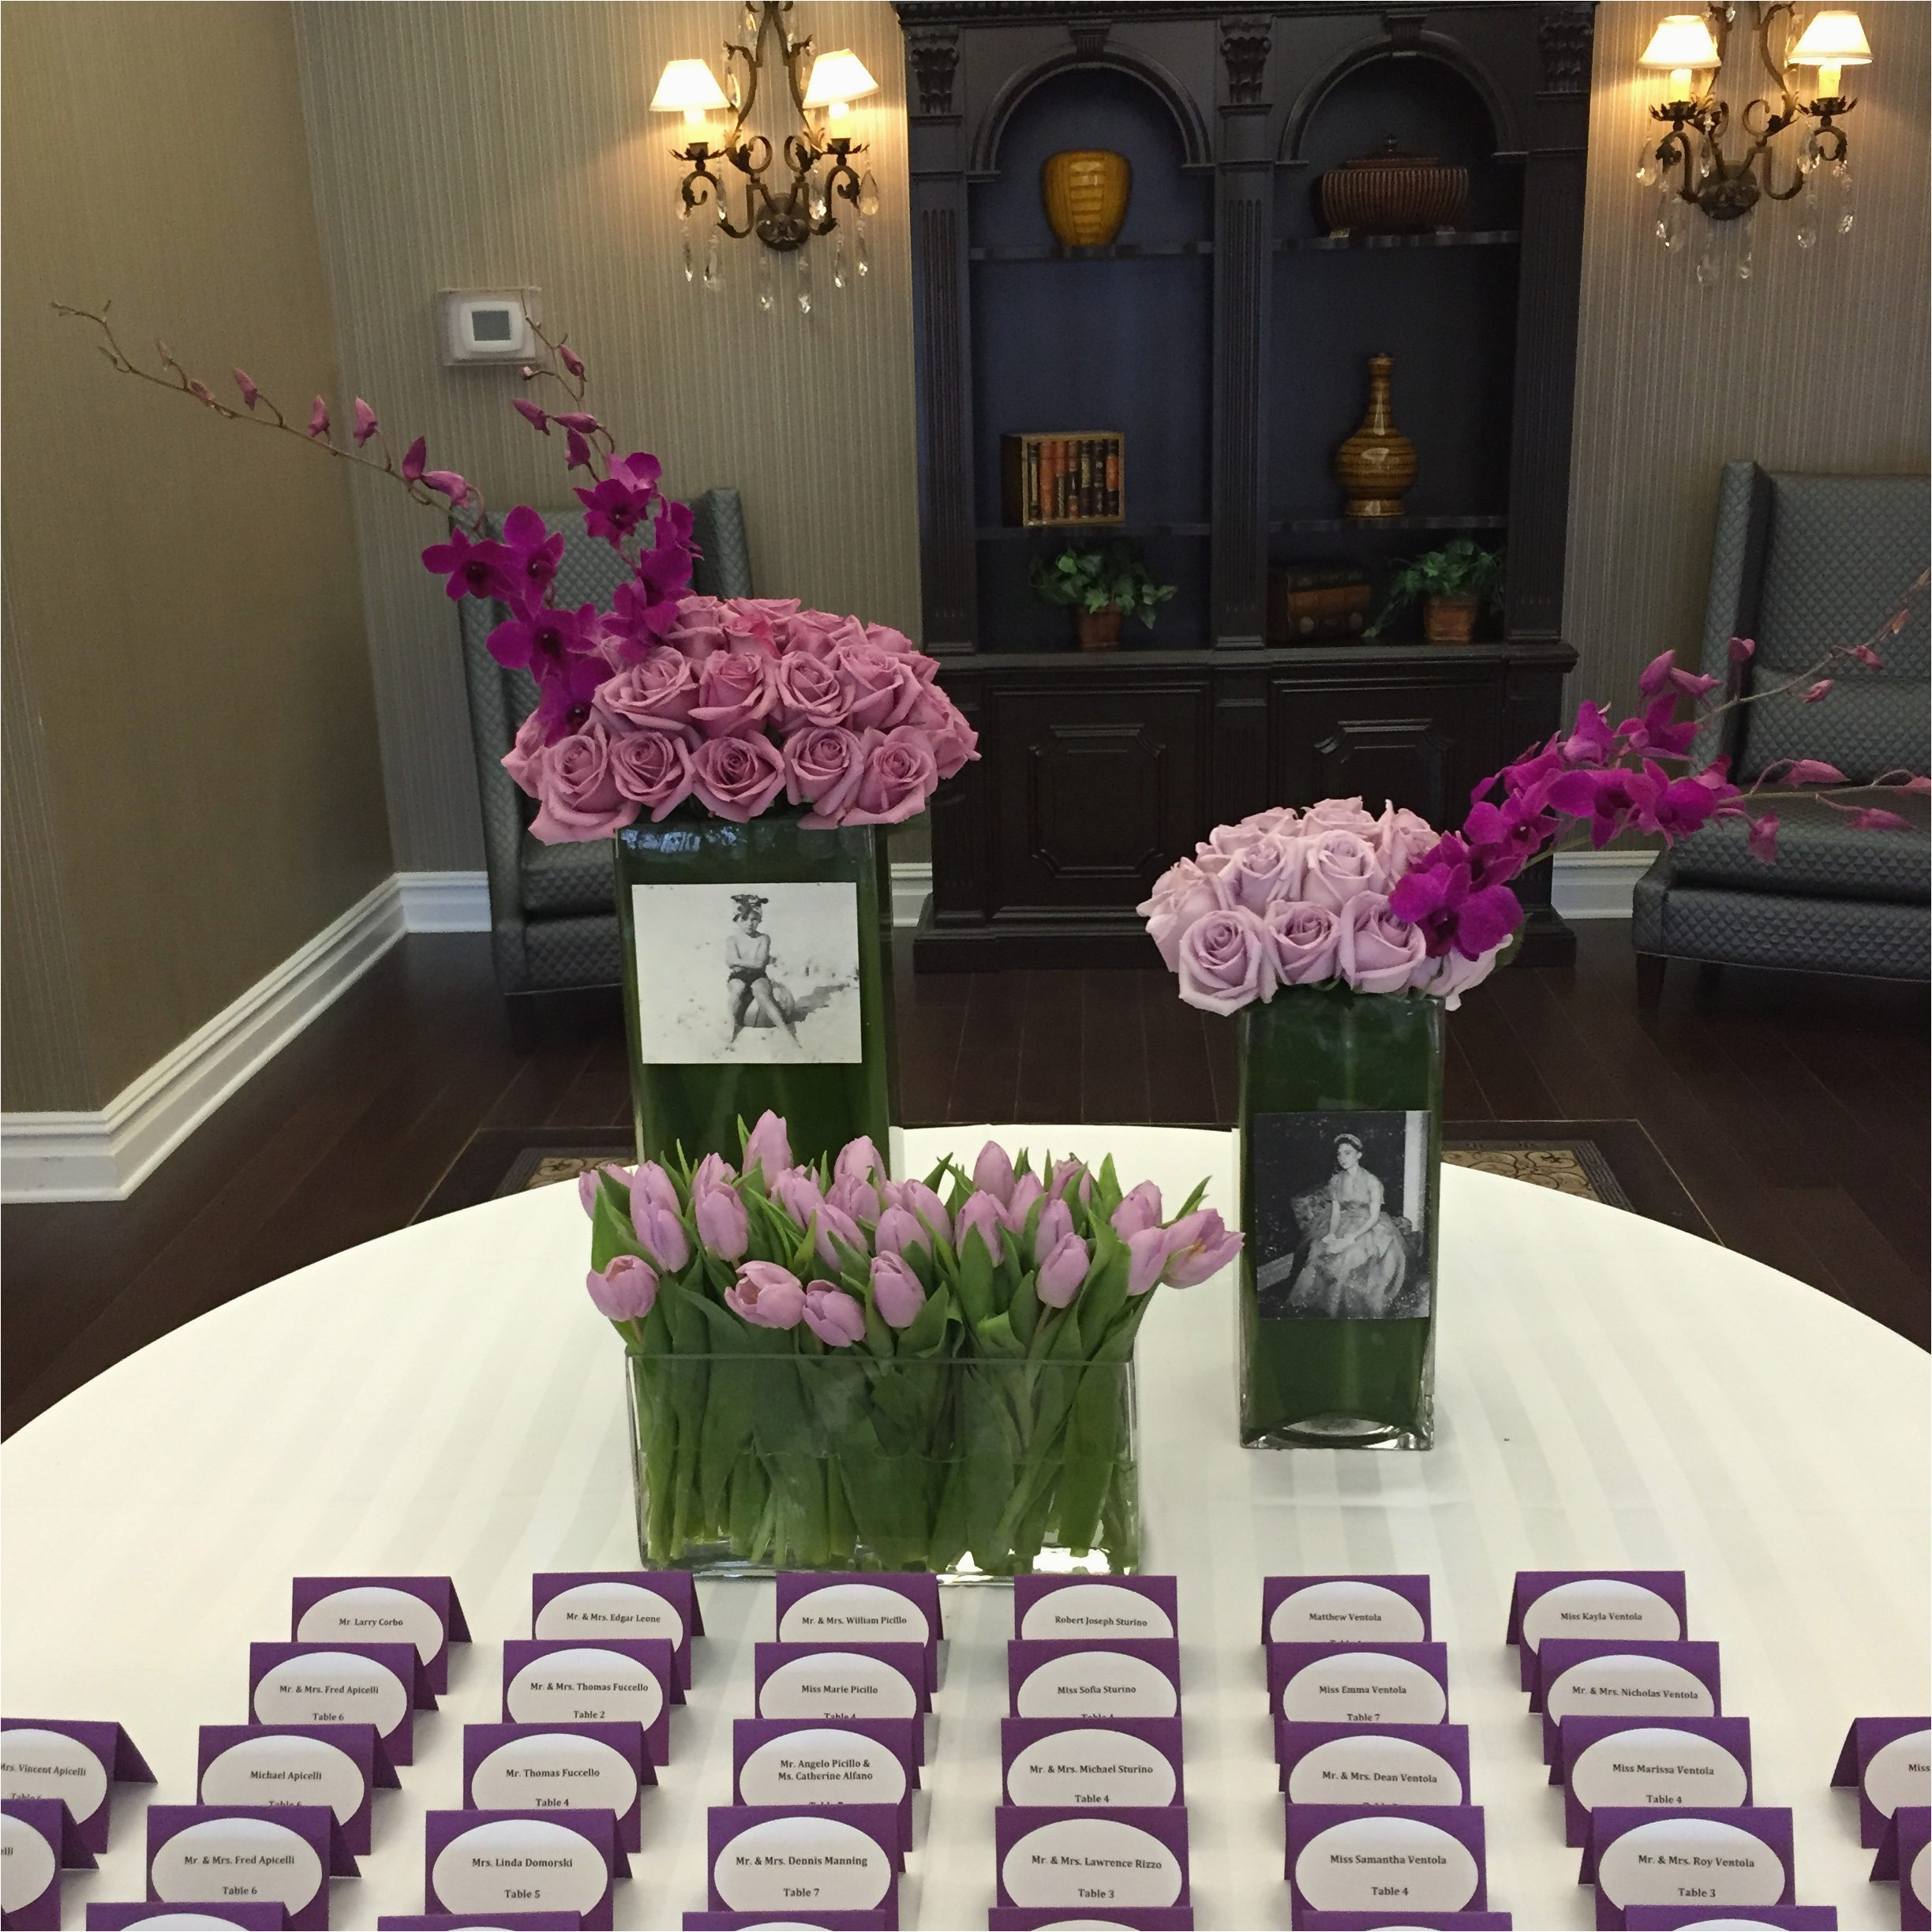 80th Birthday Party Centerpiece Ideas For Tables Volkswagen Car